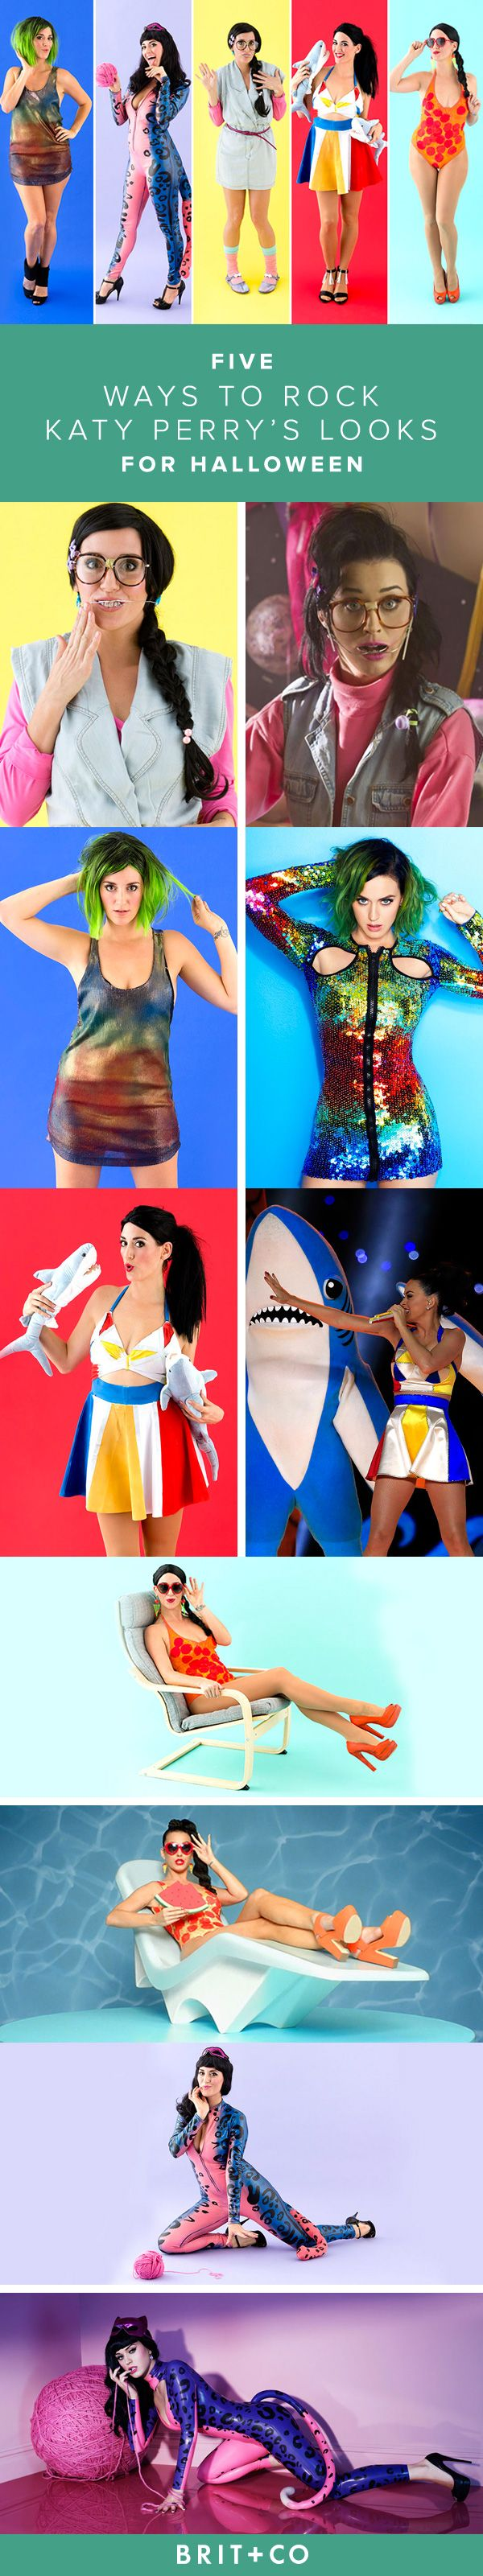 Live your teenage dream this Halloween in a Katy Perry costume.